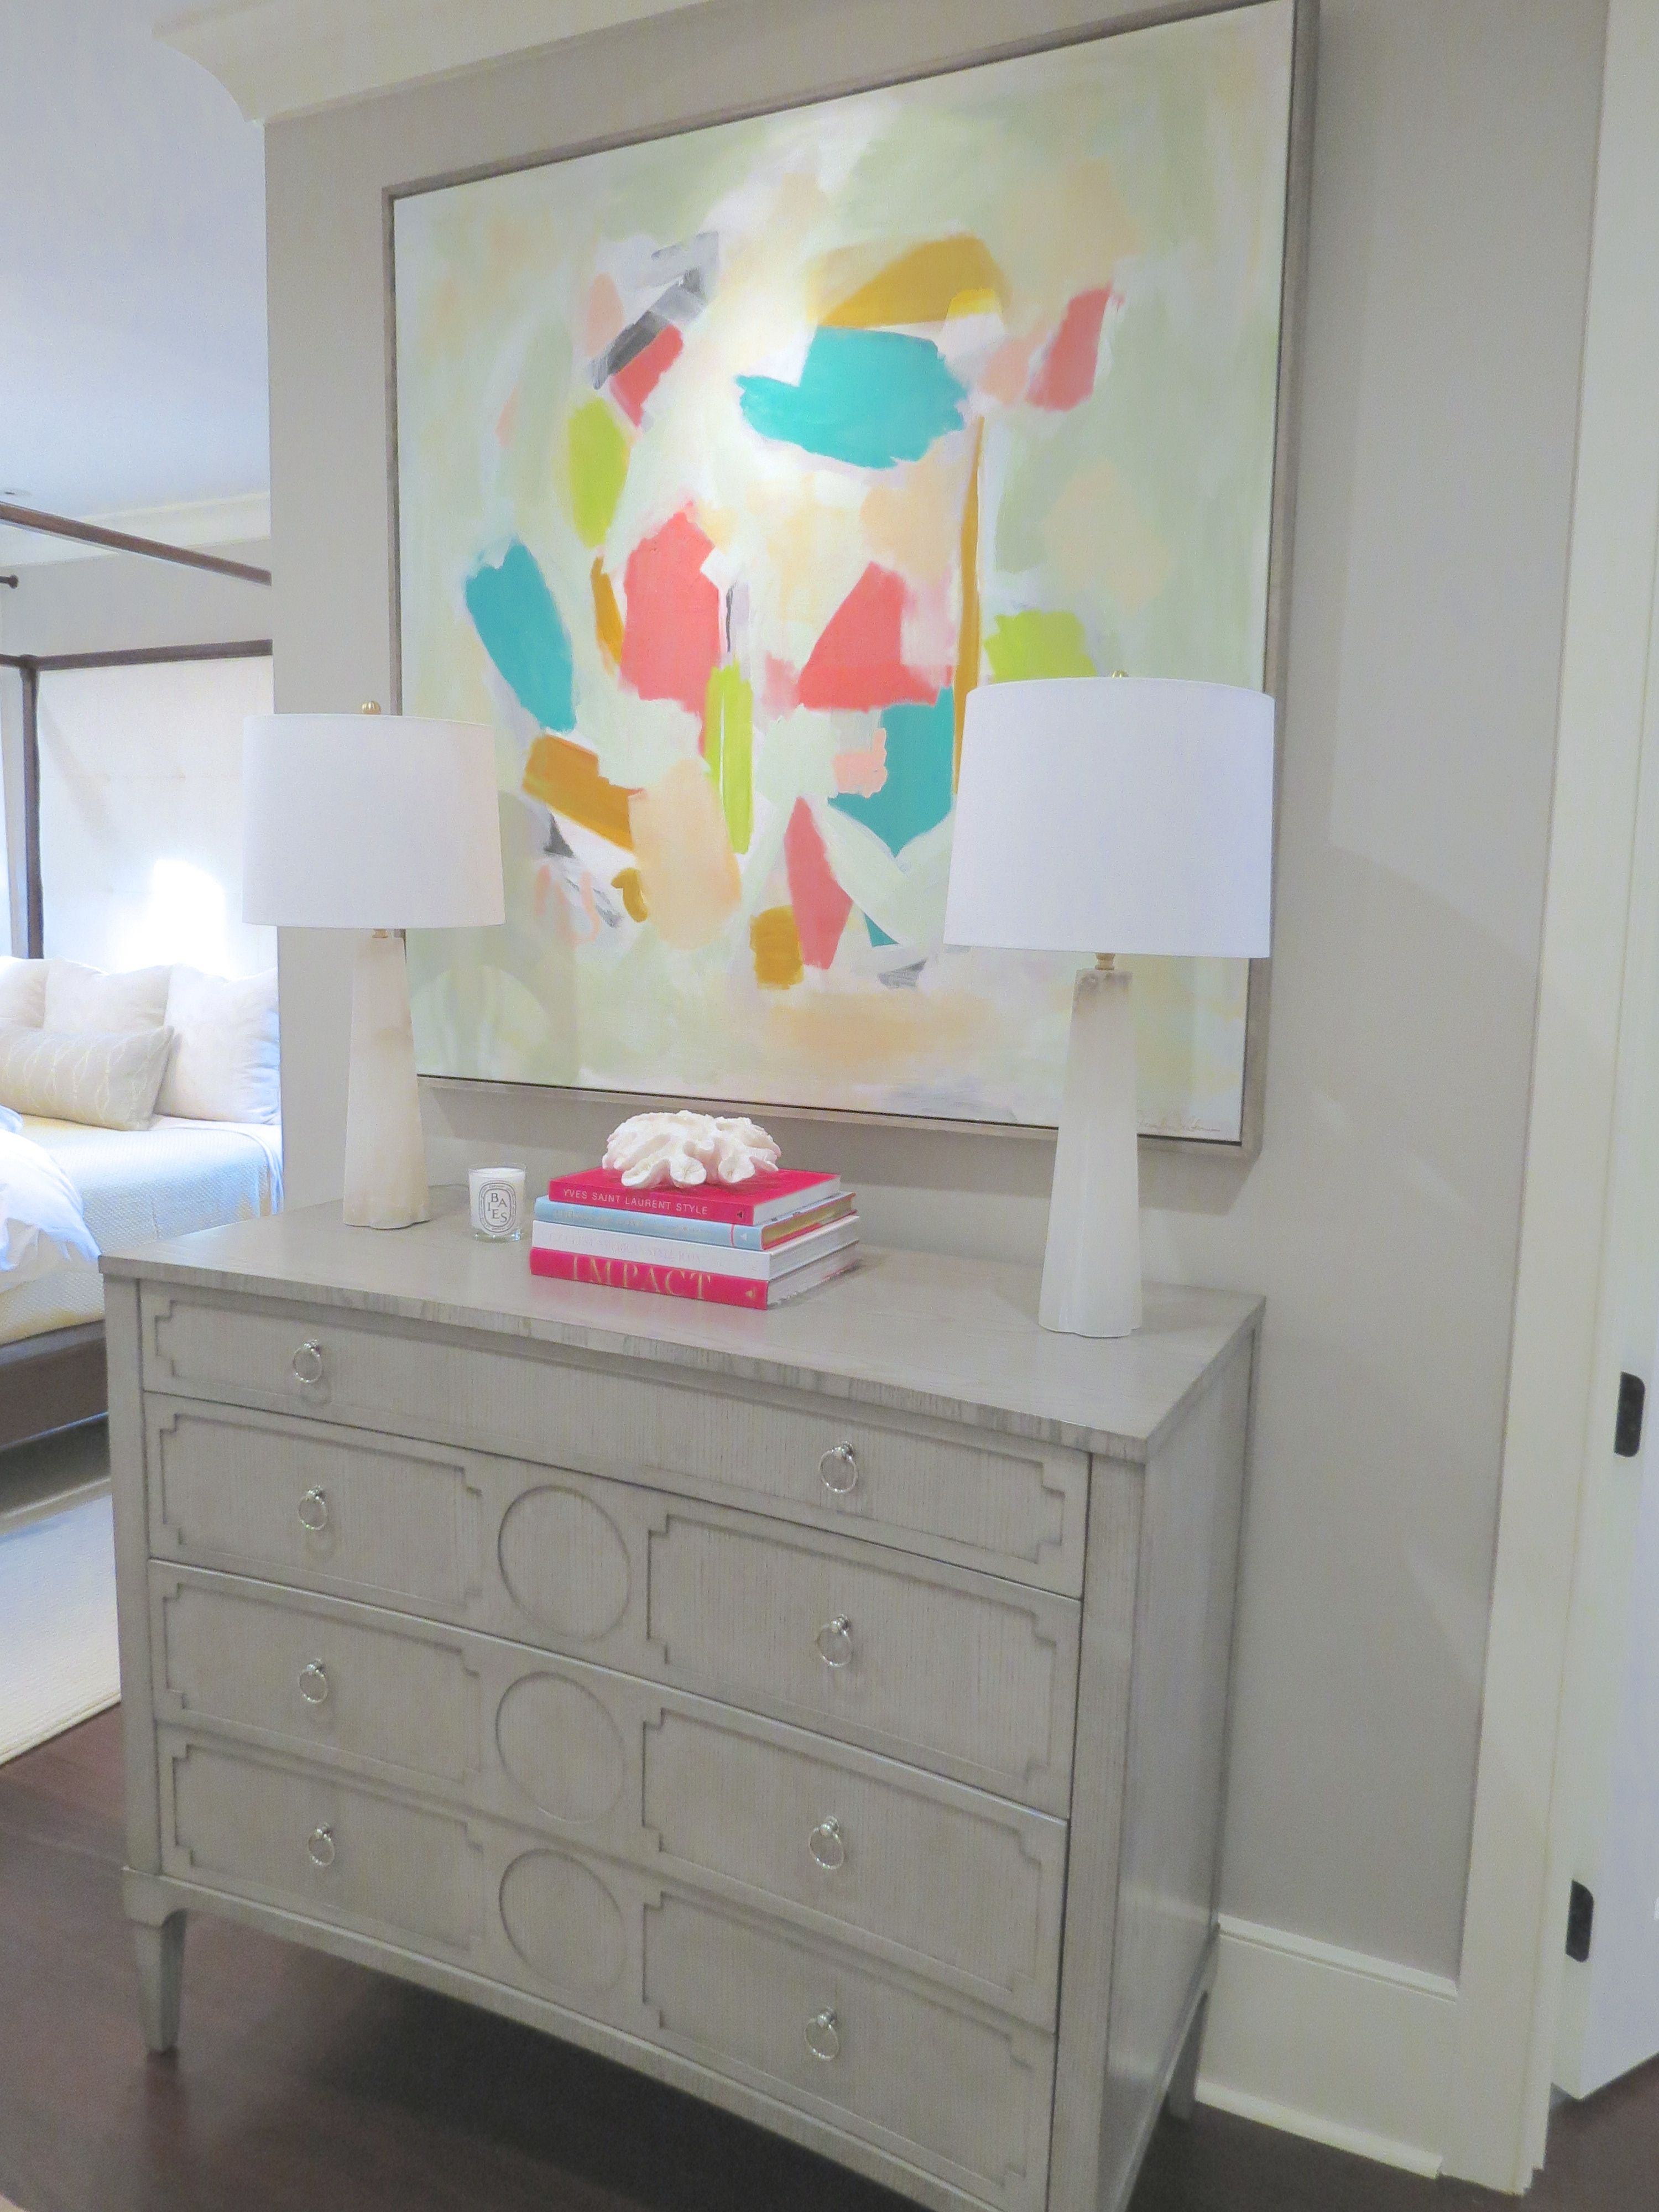 Abstract art by Jennifer Latimer bedroom chest two lamps